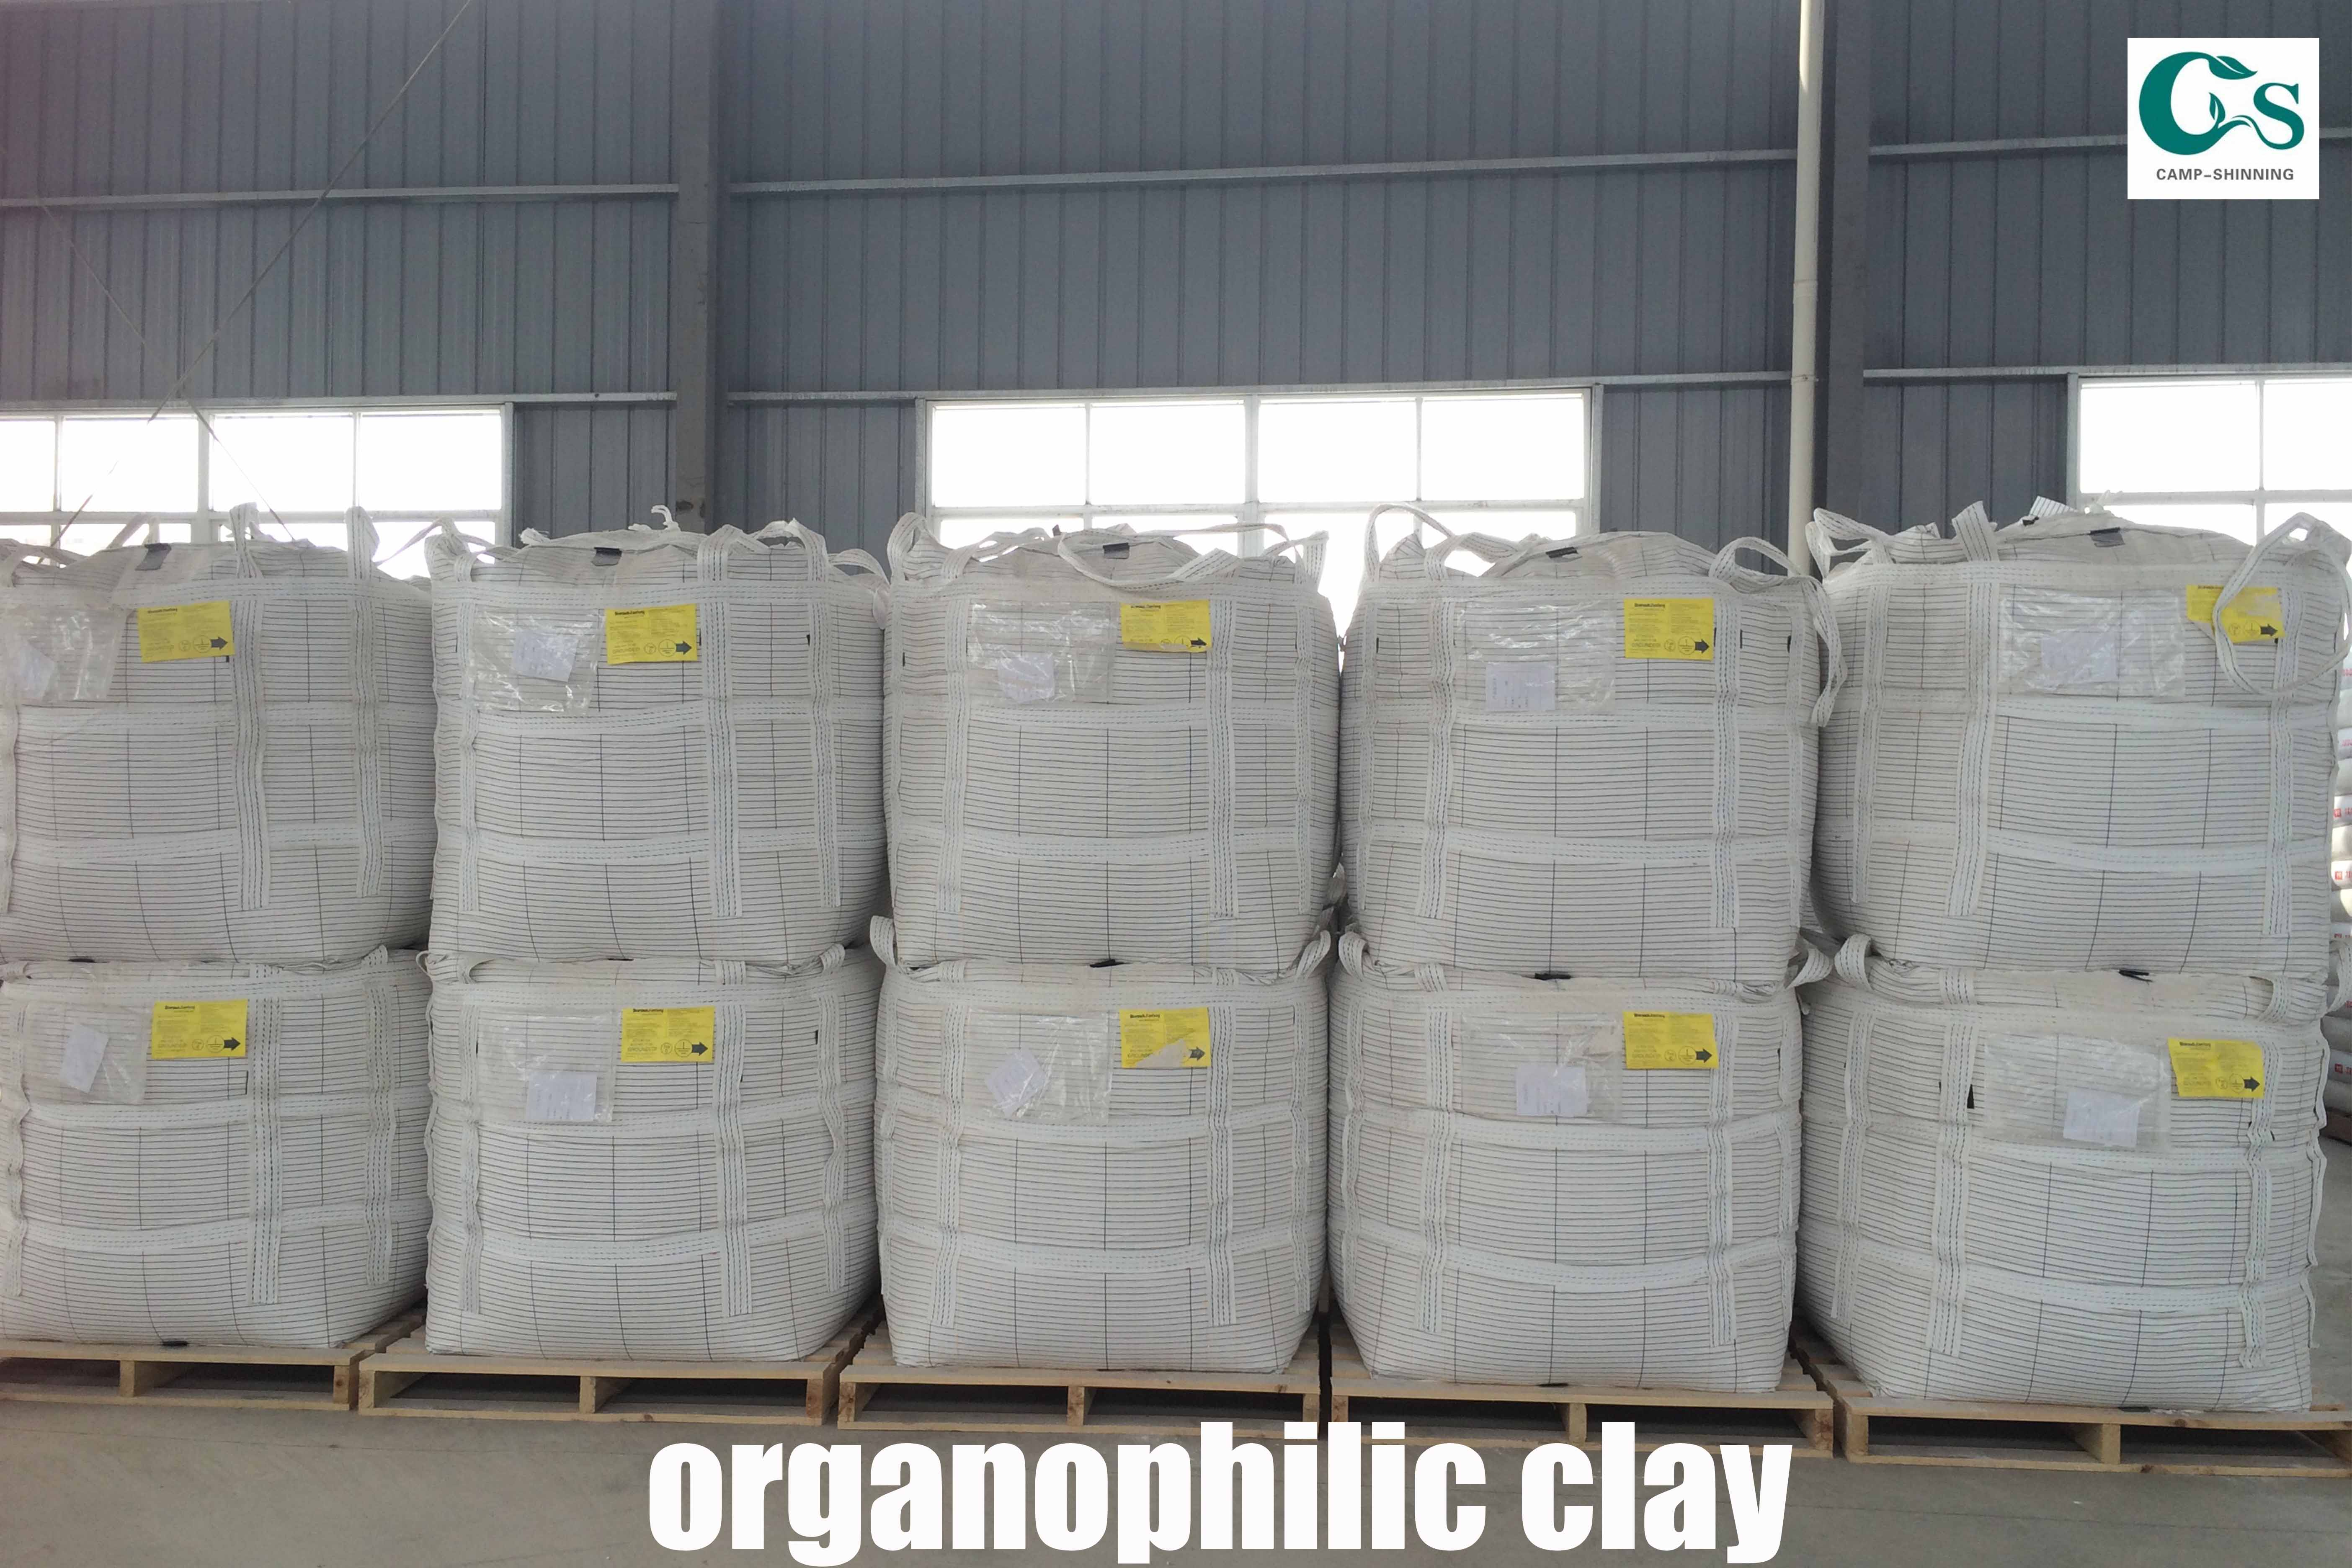 Organoclay CP-MP10 rheological additive for paints